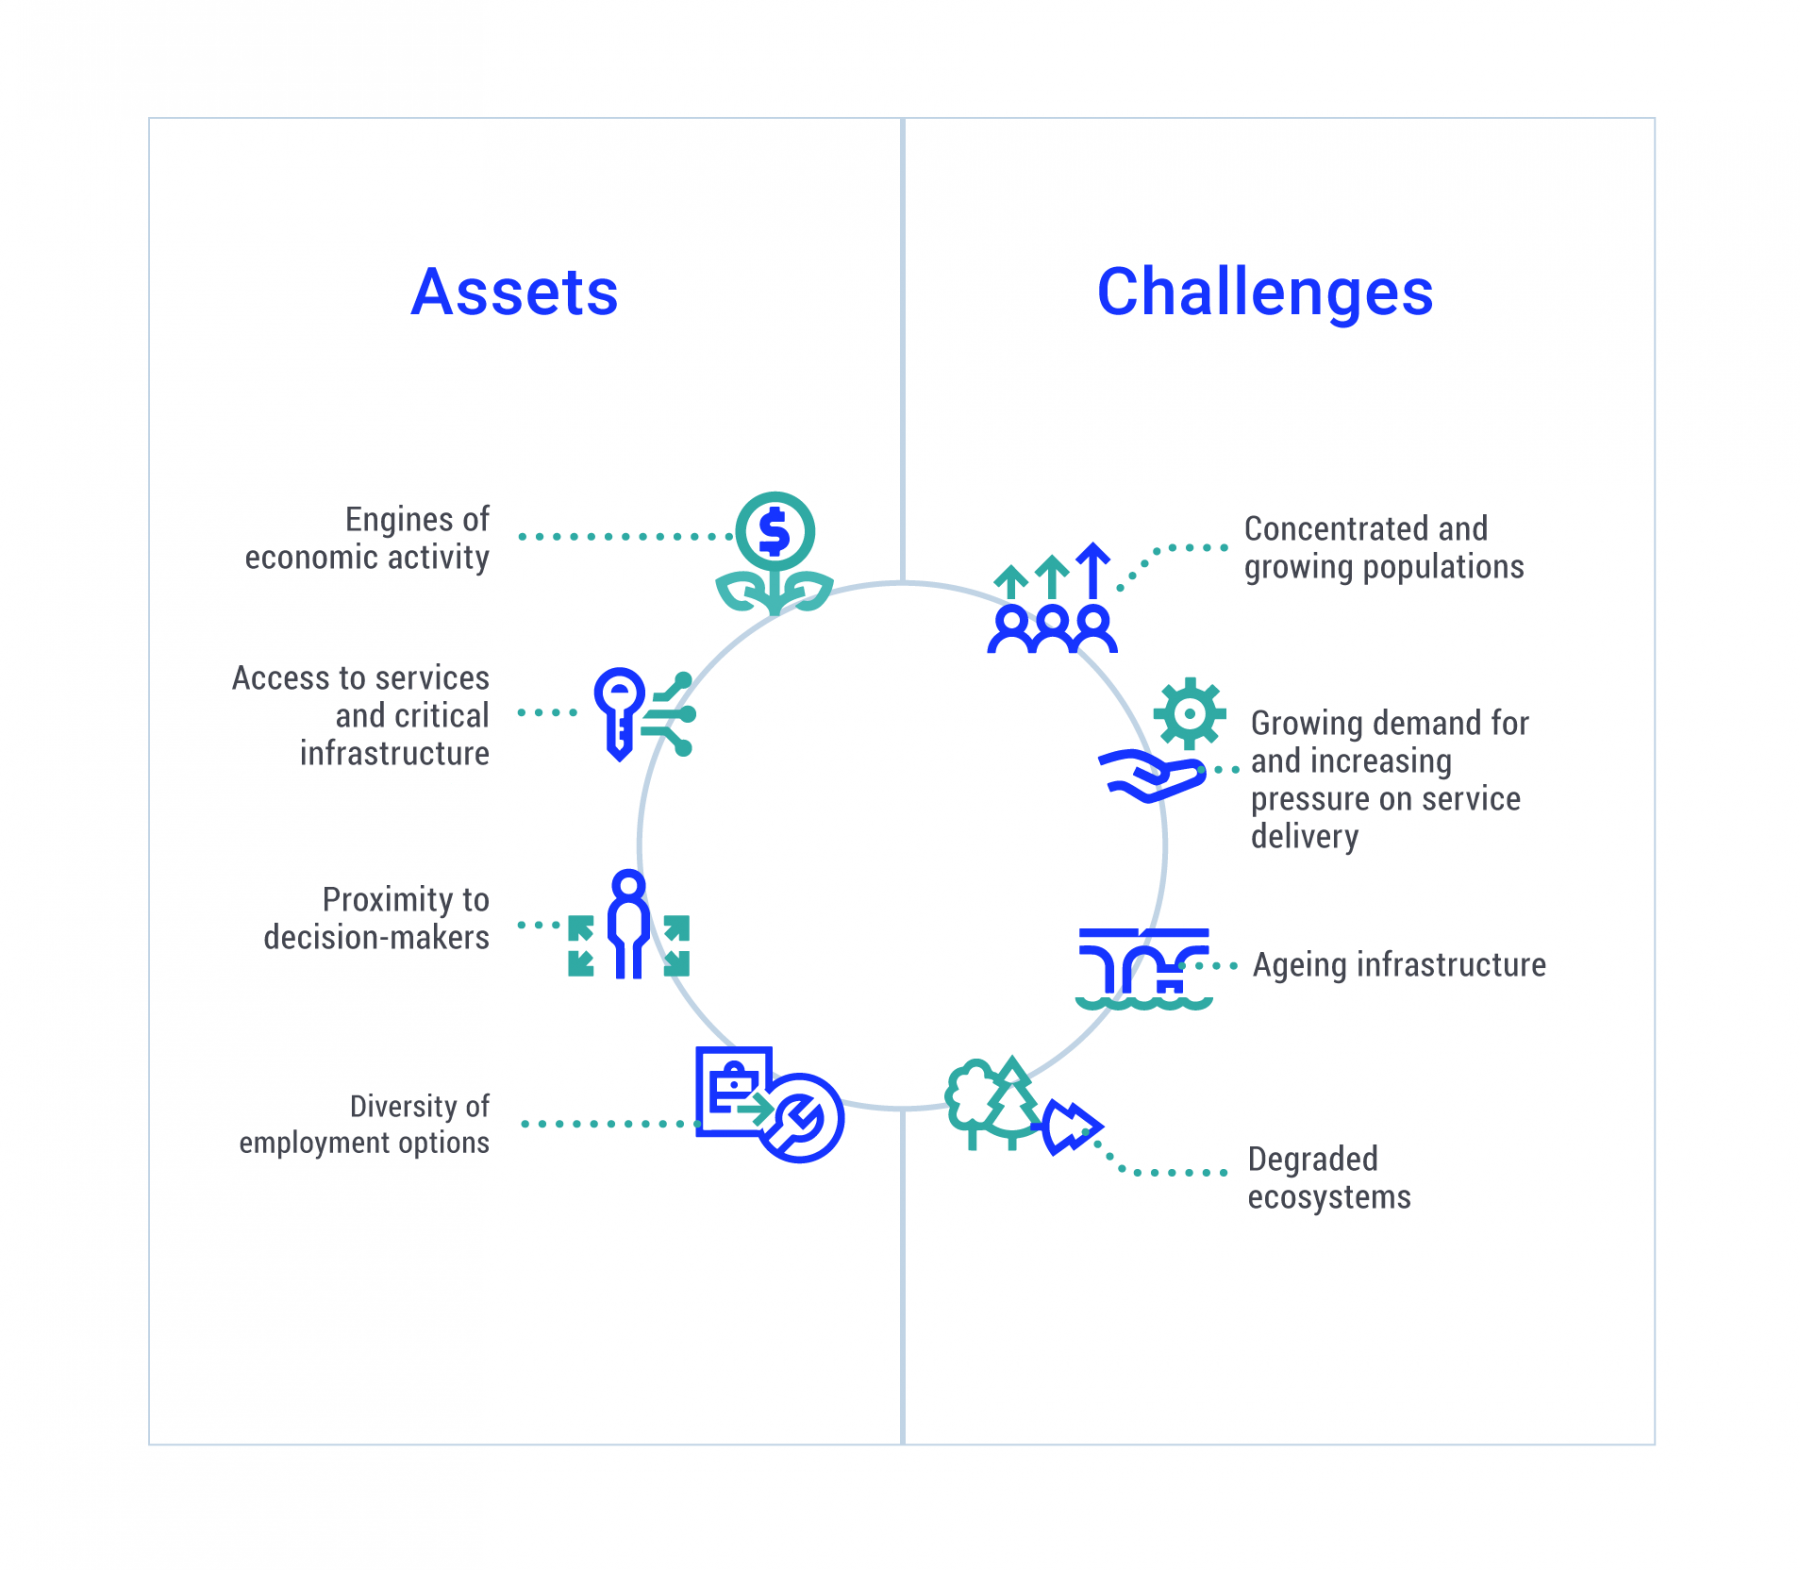 Circular diagram illustrating the assets and challenges that influence adaptive capacity in cities and towns. Assets are identified as engines of economic activity, access to services and critical infrastructure, proximity to decision makers and diversity of employment options. Challenges are identified as concentrated and growing populations, growing demand for and increasing pressure on service delivery, ageing infrastructure, and degraded ecosystems.